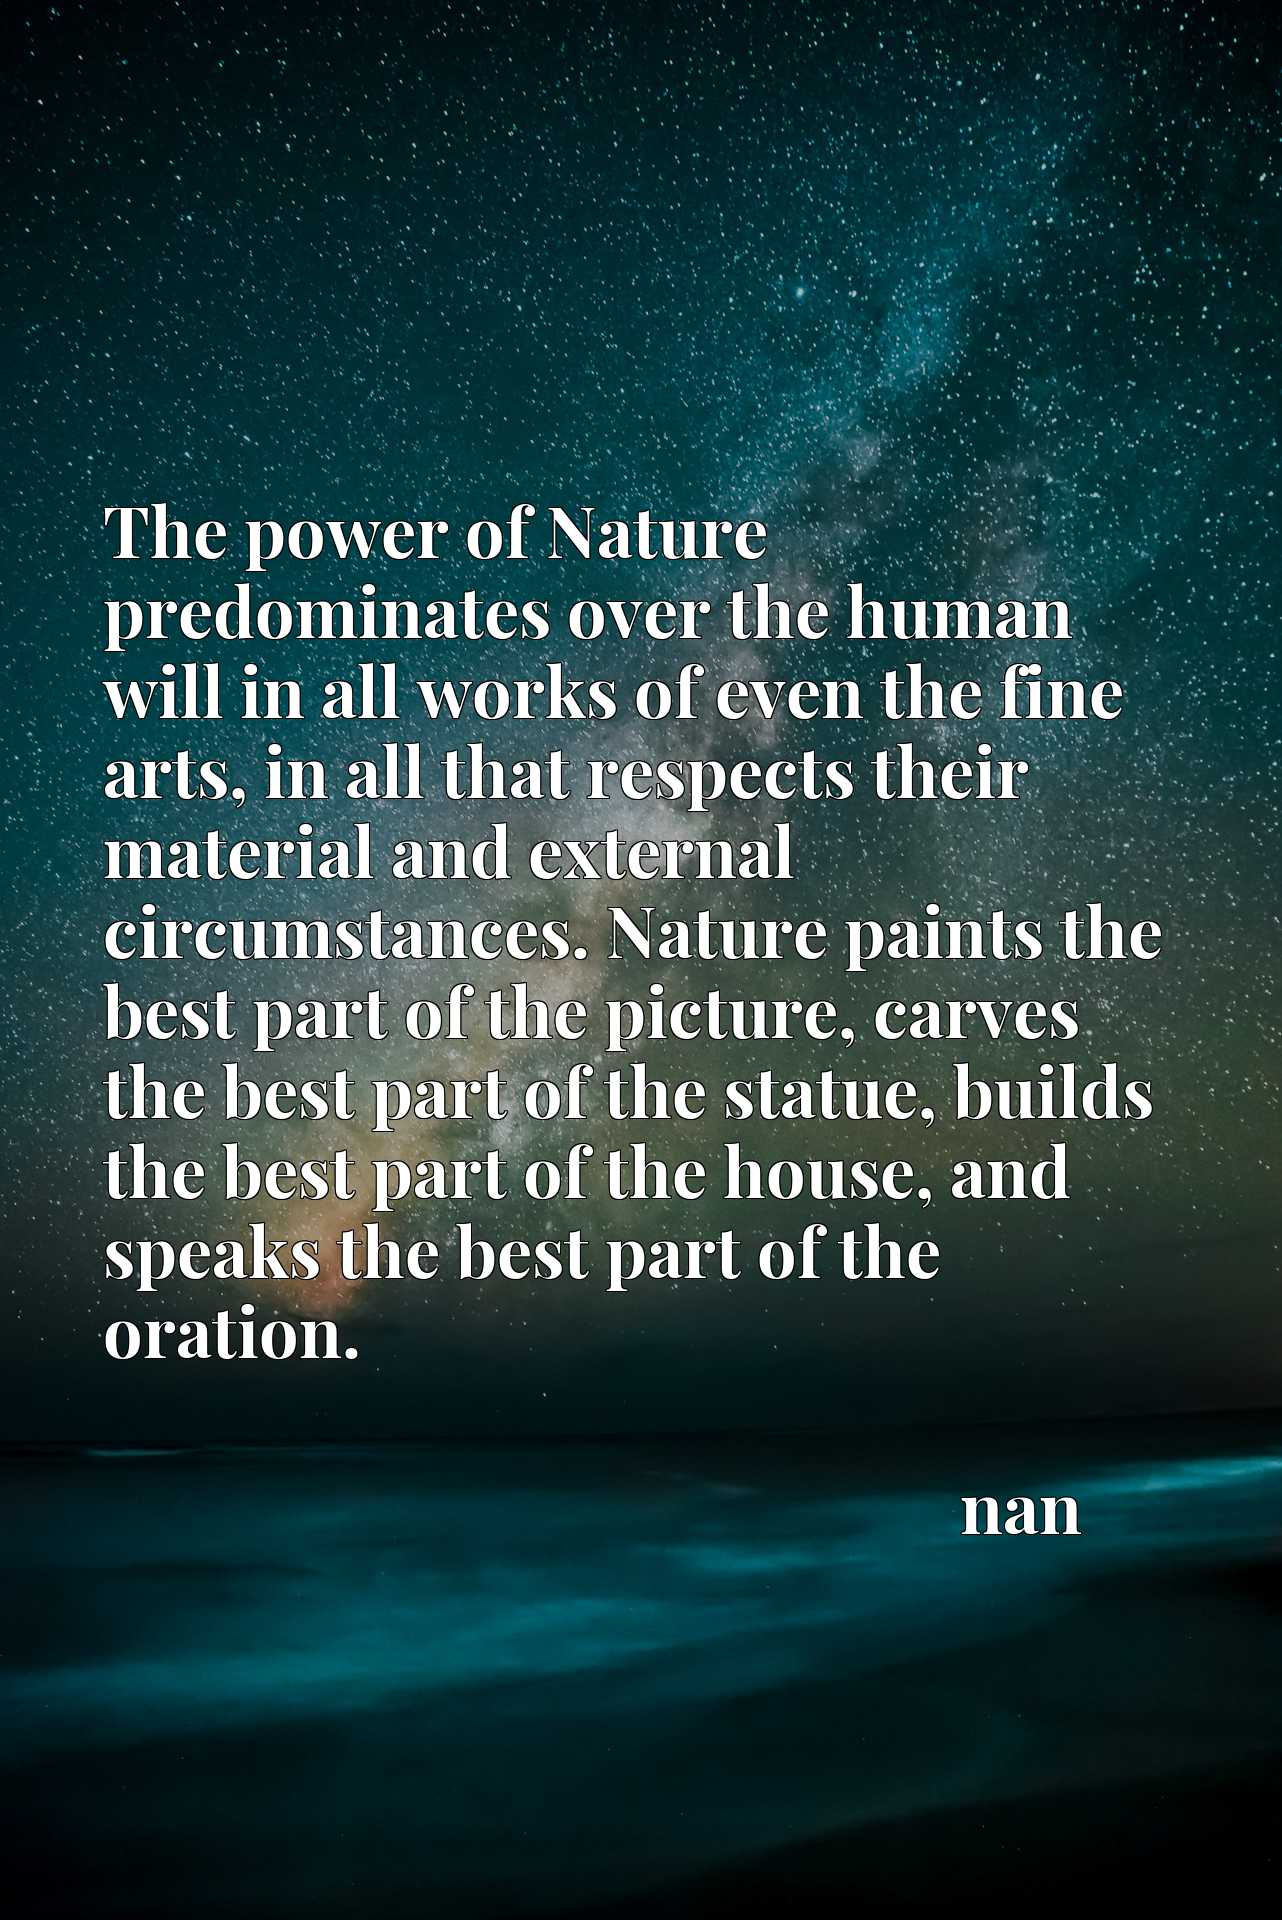 The power of Nature predominates over the human will in all works of even the fine arts, in all that respects their material and external circumstances. Nature paints the best part of the picture, carves the best part of the statue, builds the best part of the house, and speaks the best part of the oration.